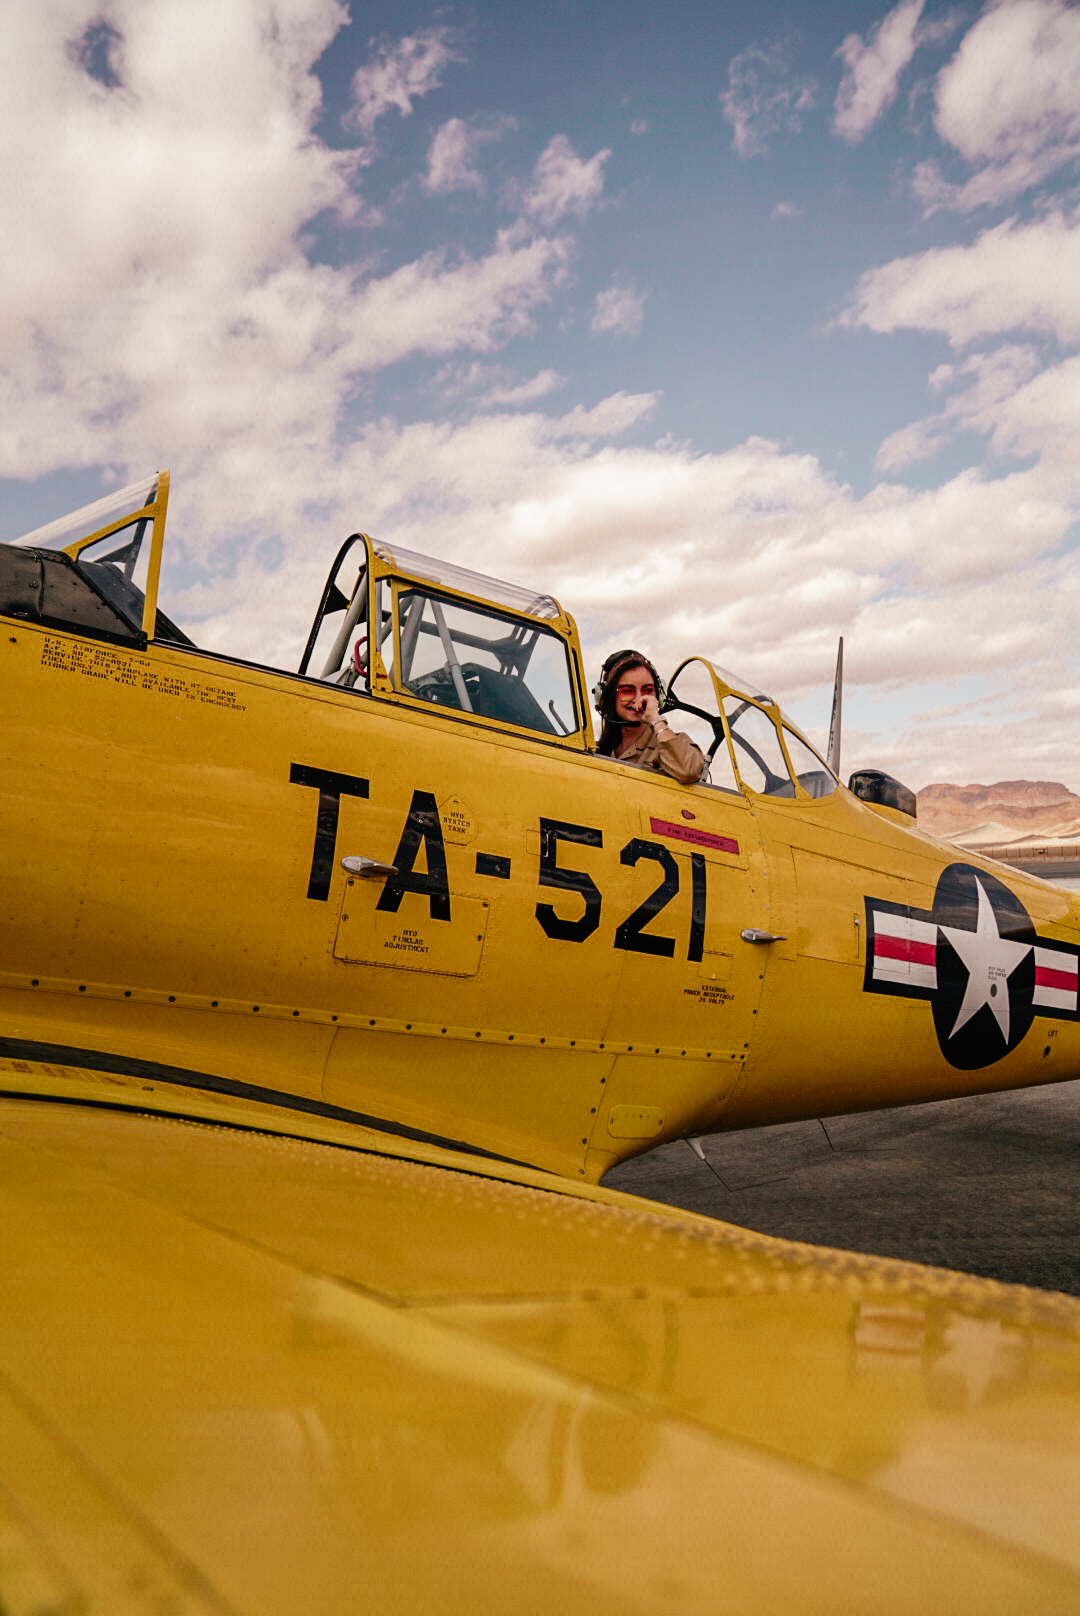 north american t-6 harvard texan vintage plane